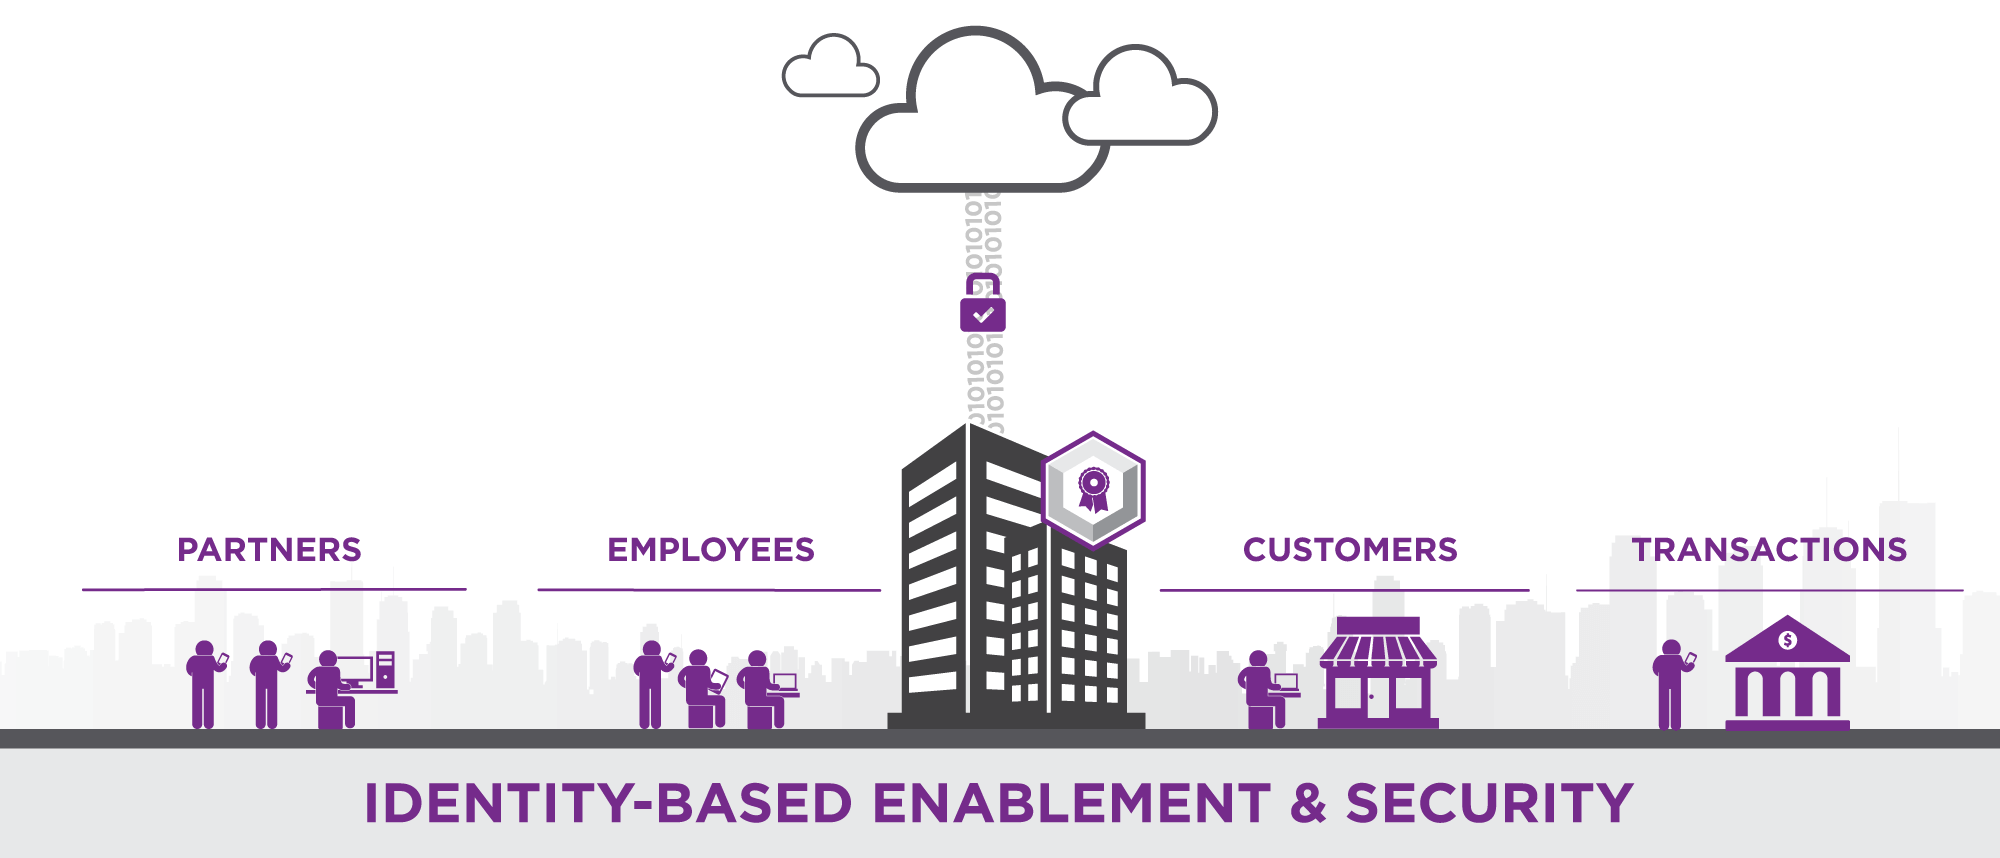 How do i enable empower my enterprise identity based enablement security pooptronica